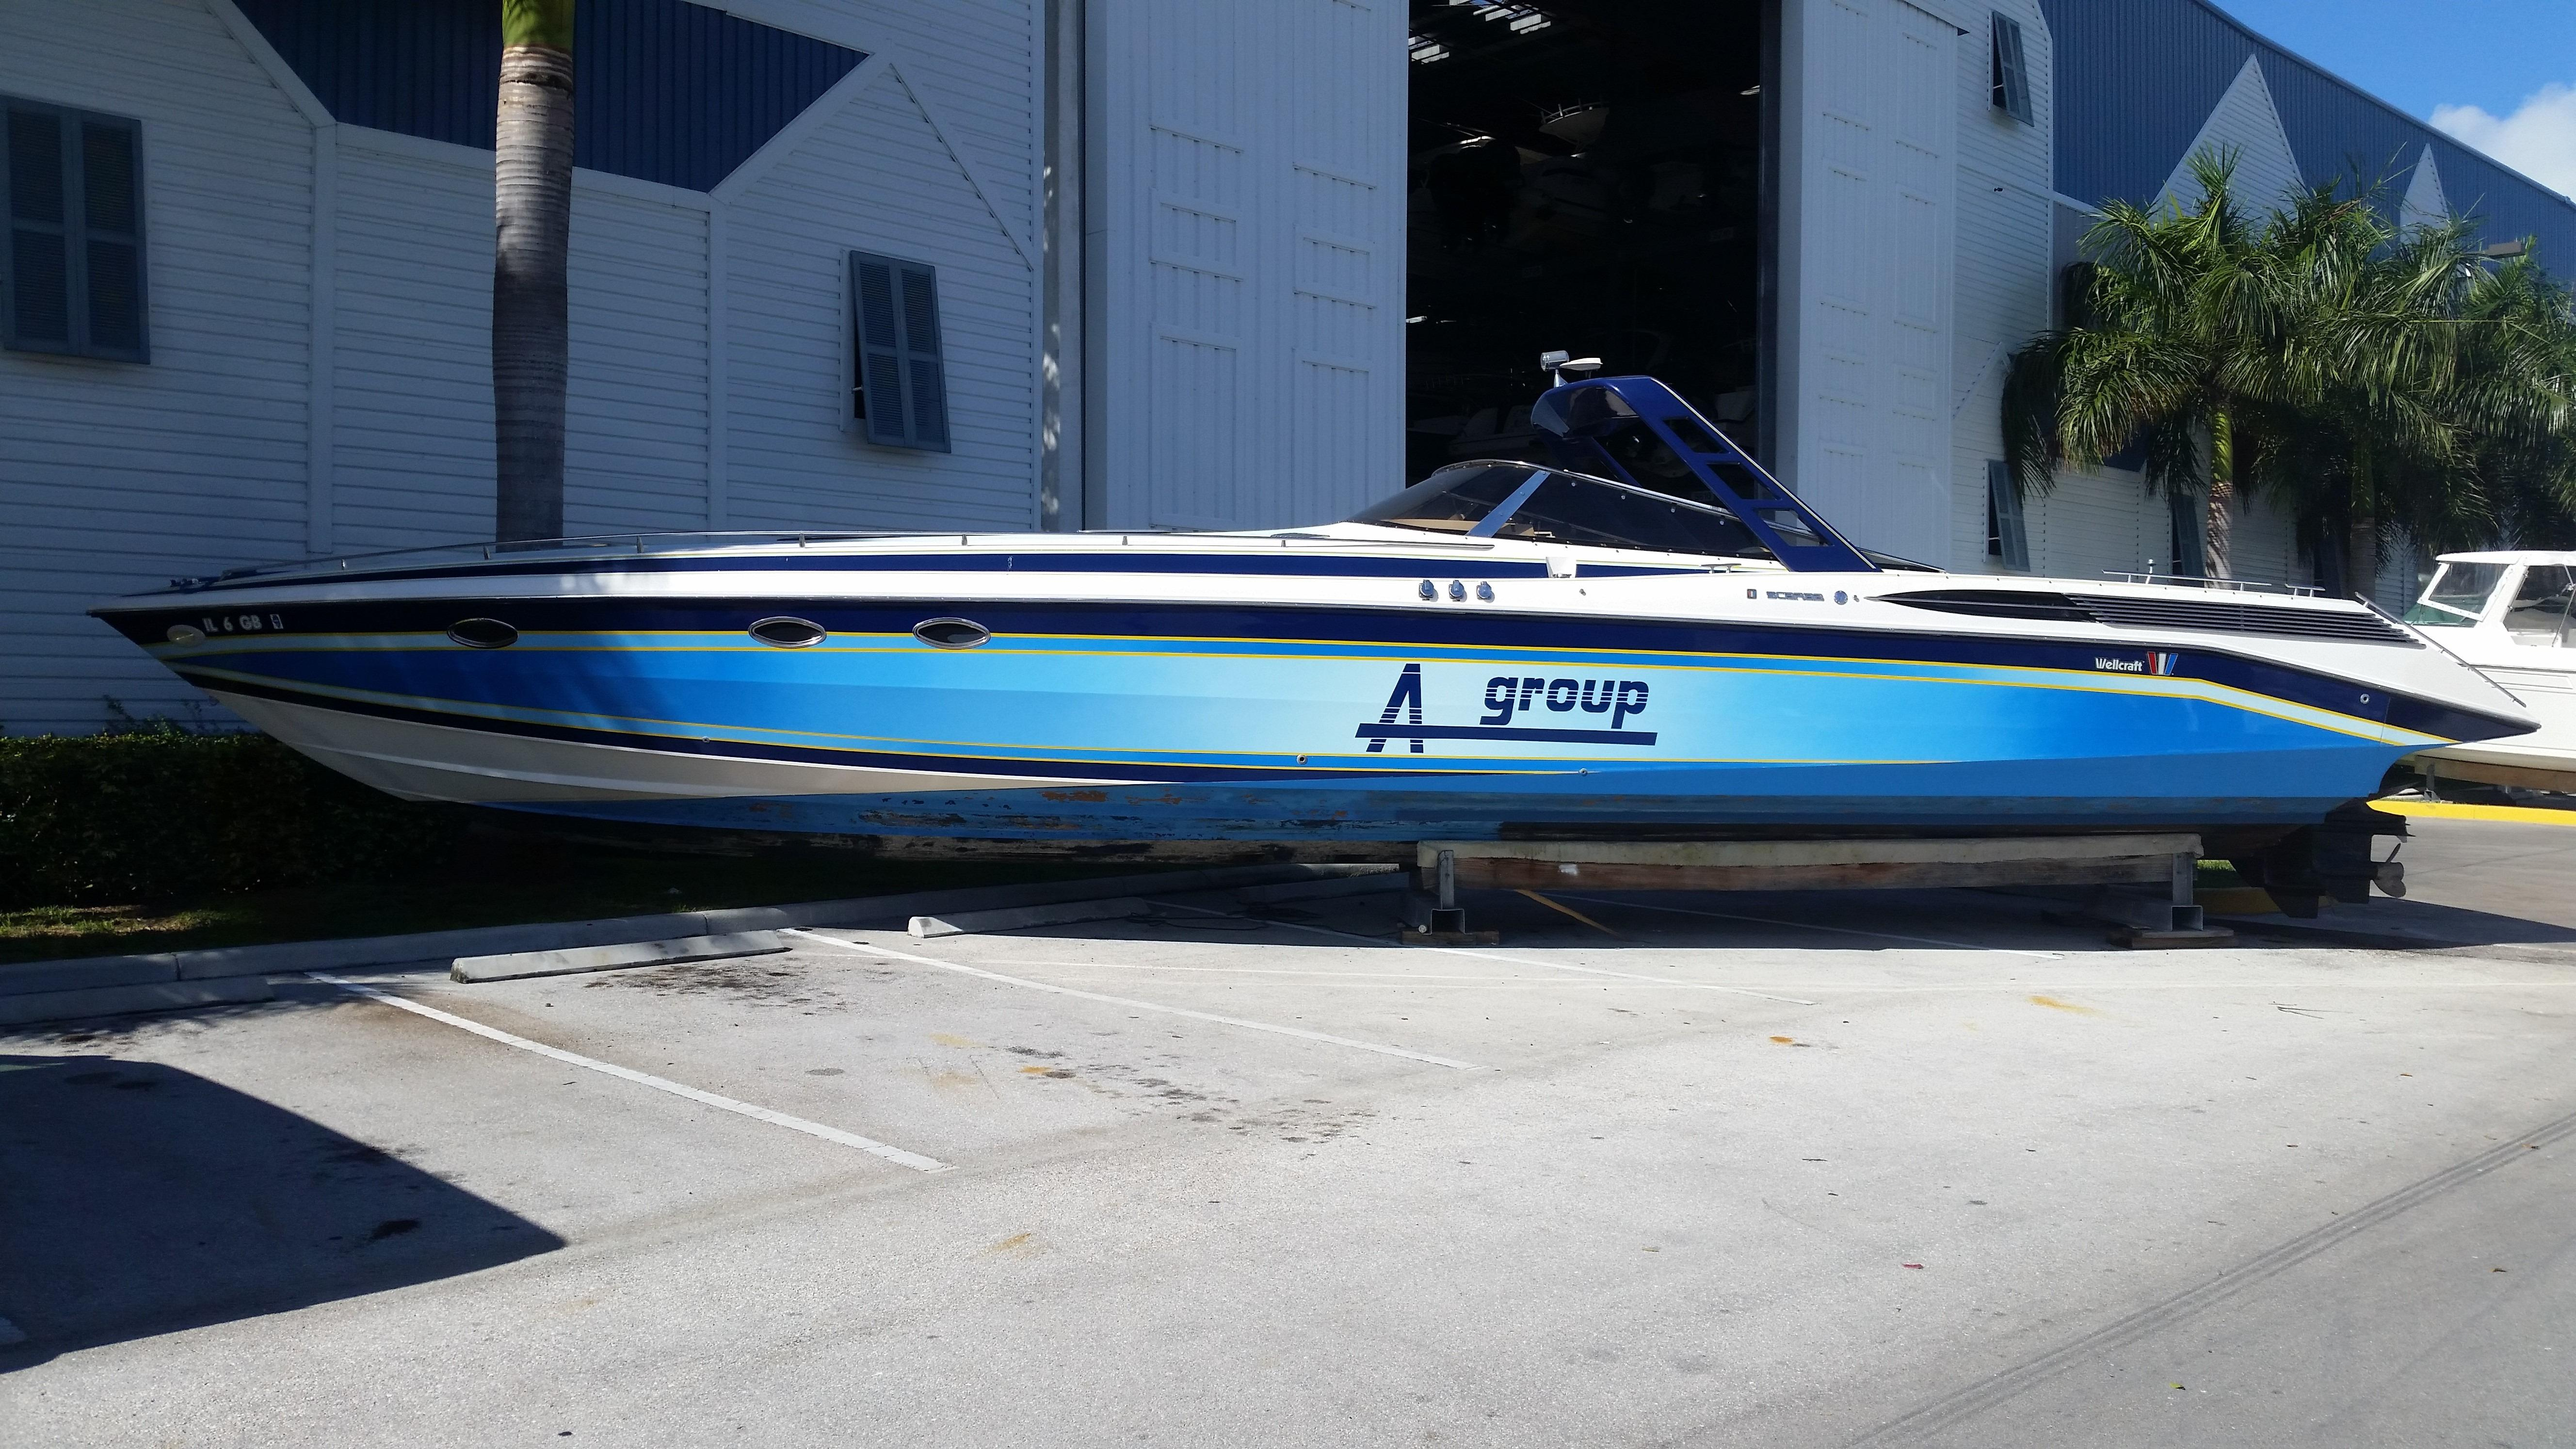 1989 Wellcraft 50 Scarab Meteor 5000 Power Boat For Sale ...